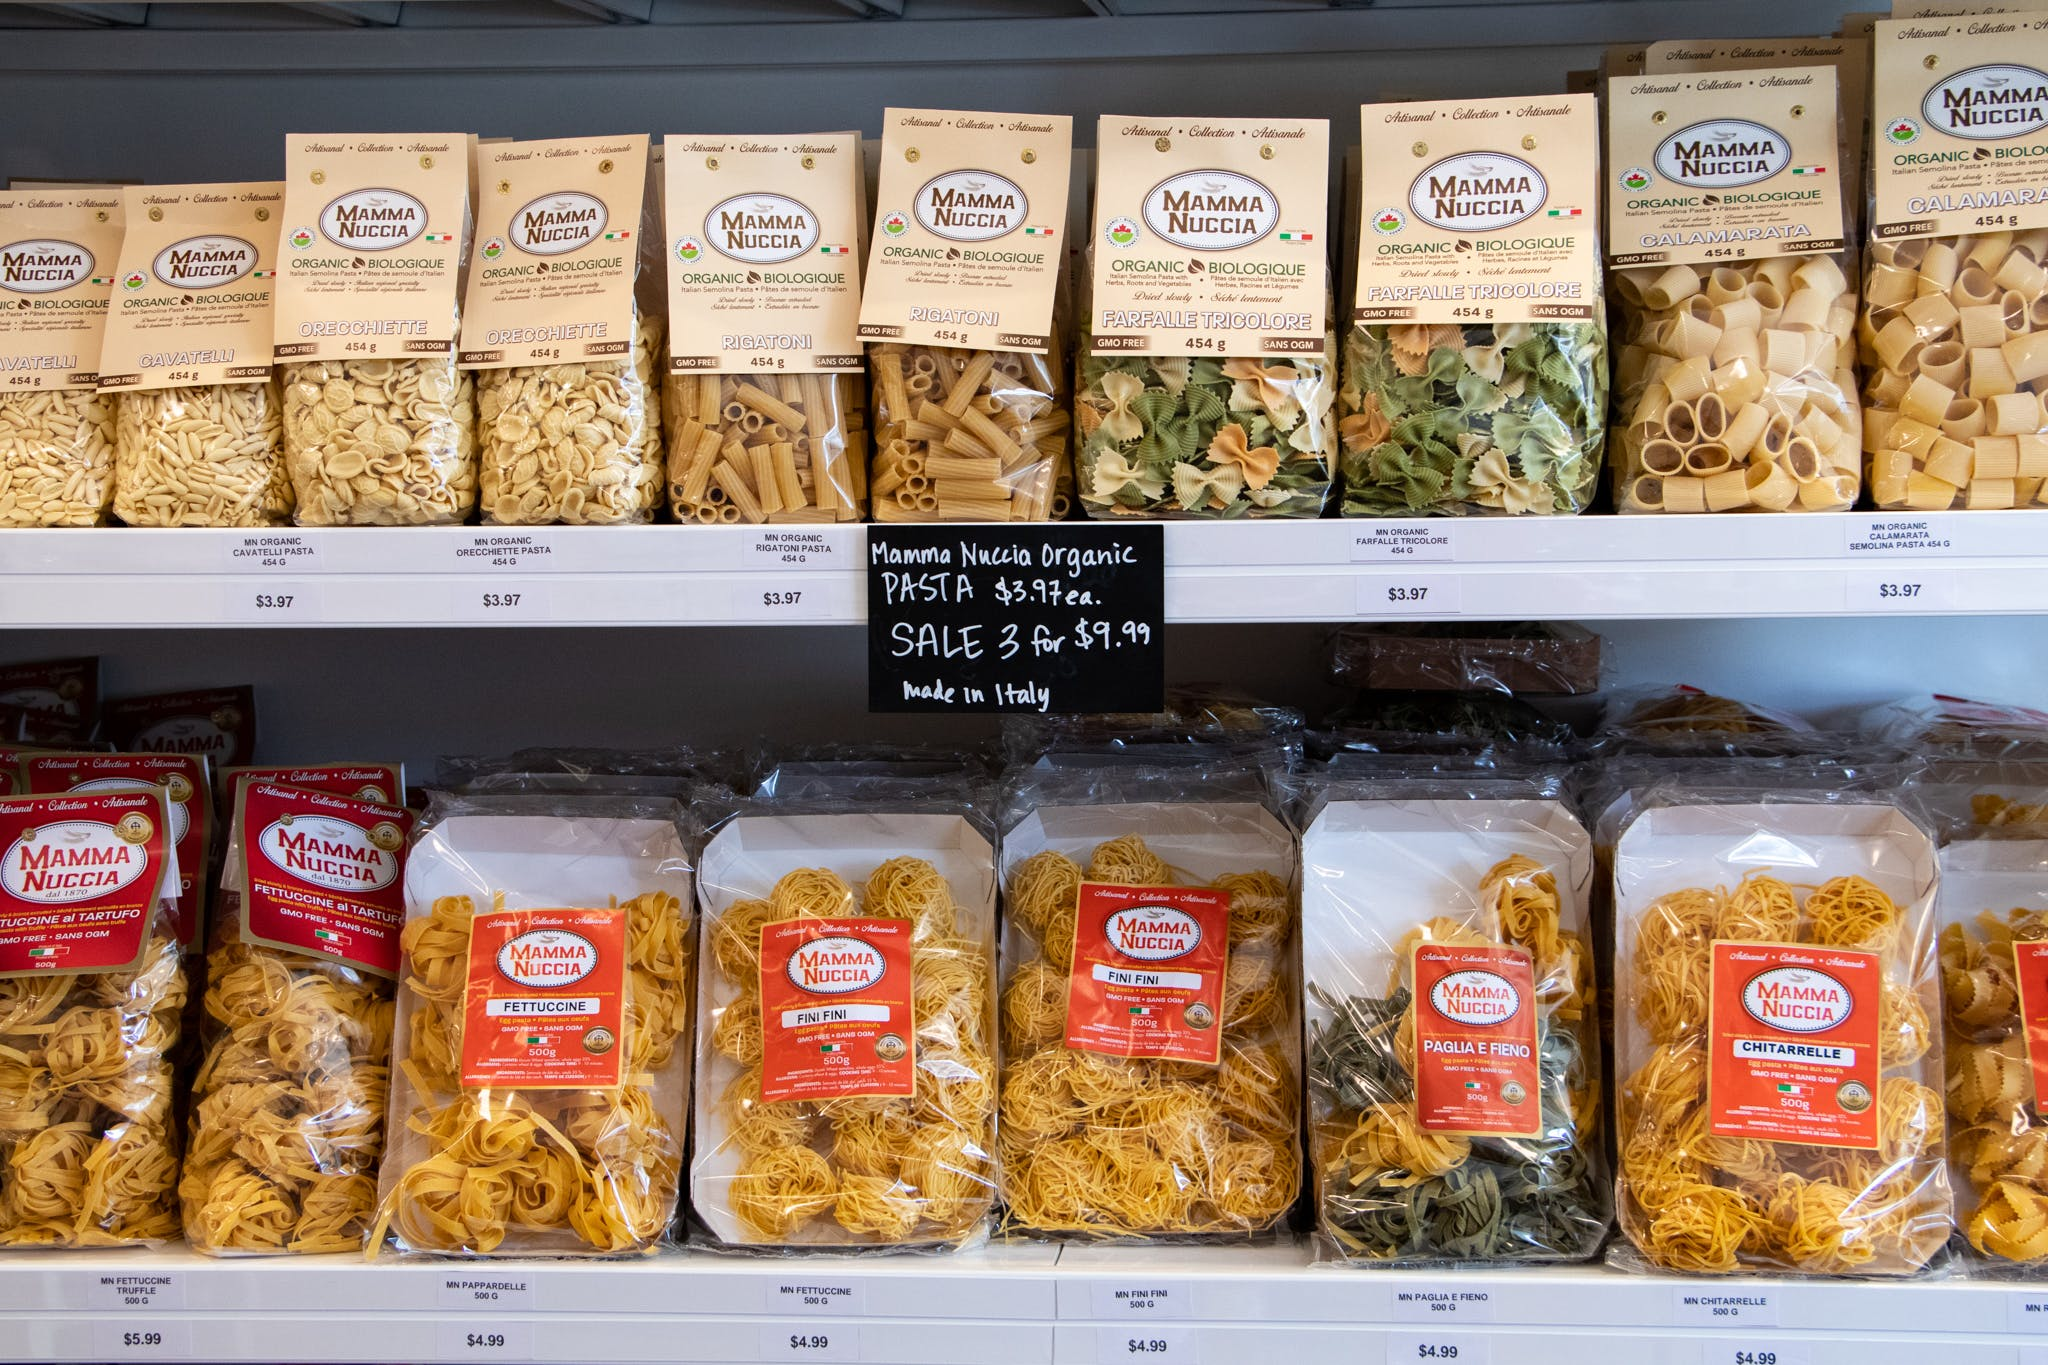 Pasta on shelves from La Spesa Food Market. Image by: @paothebao